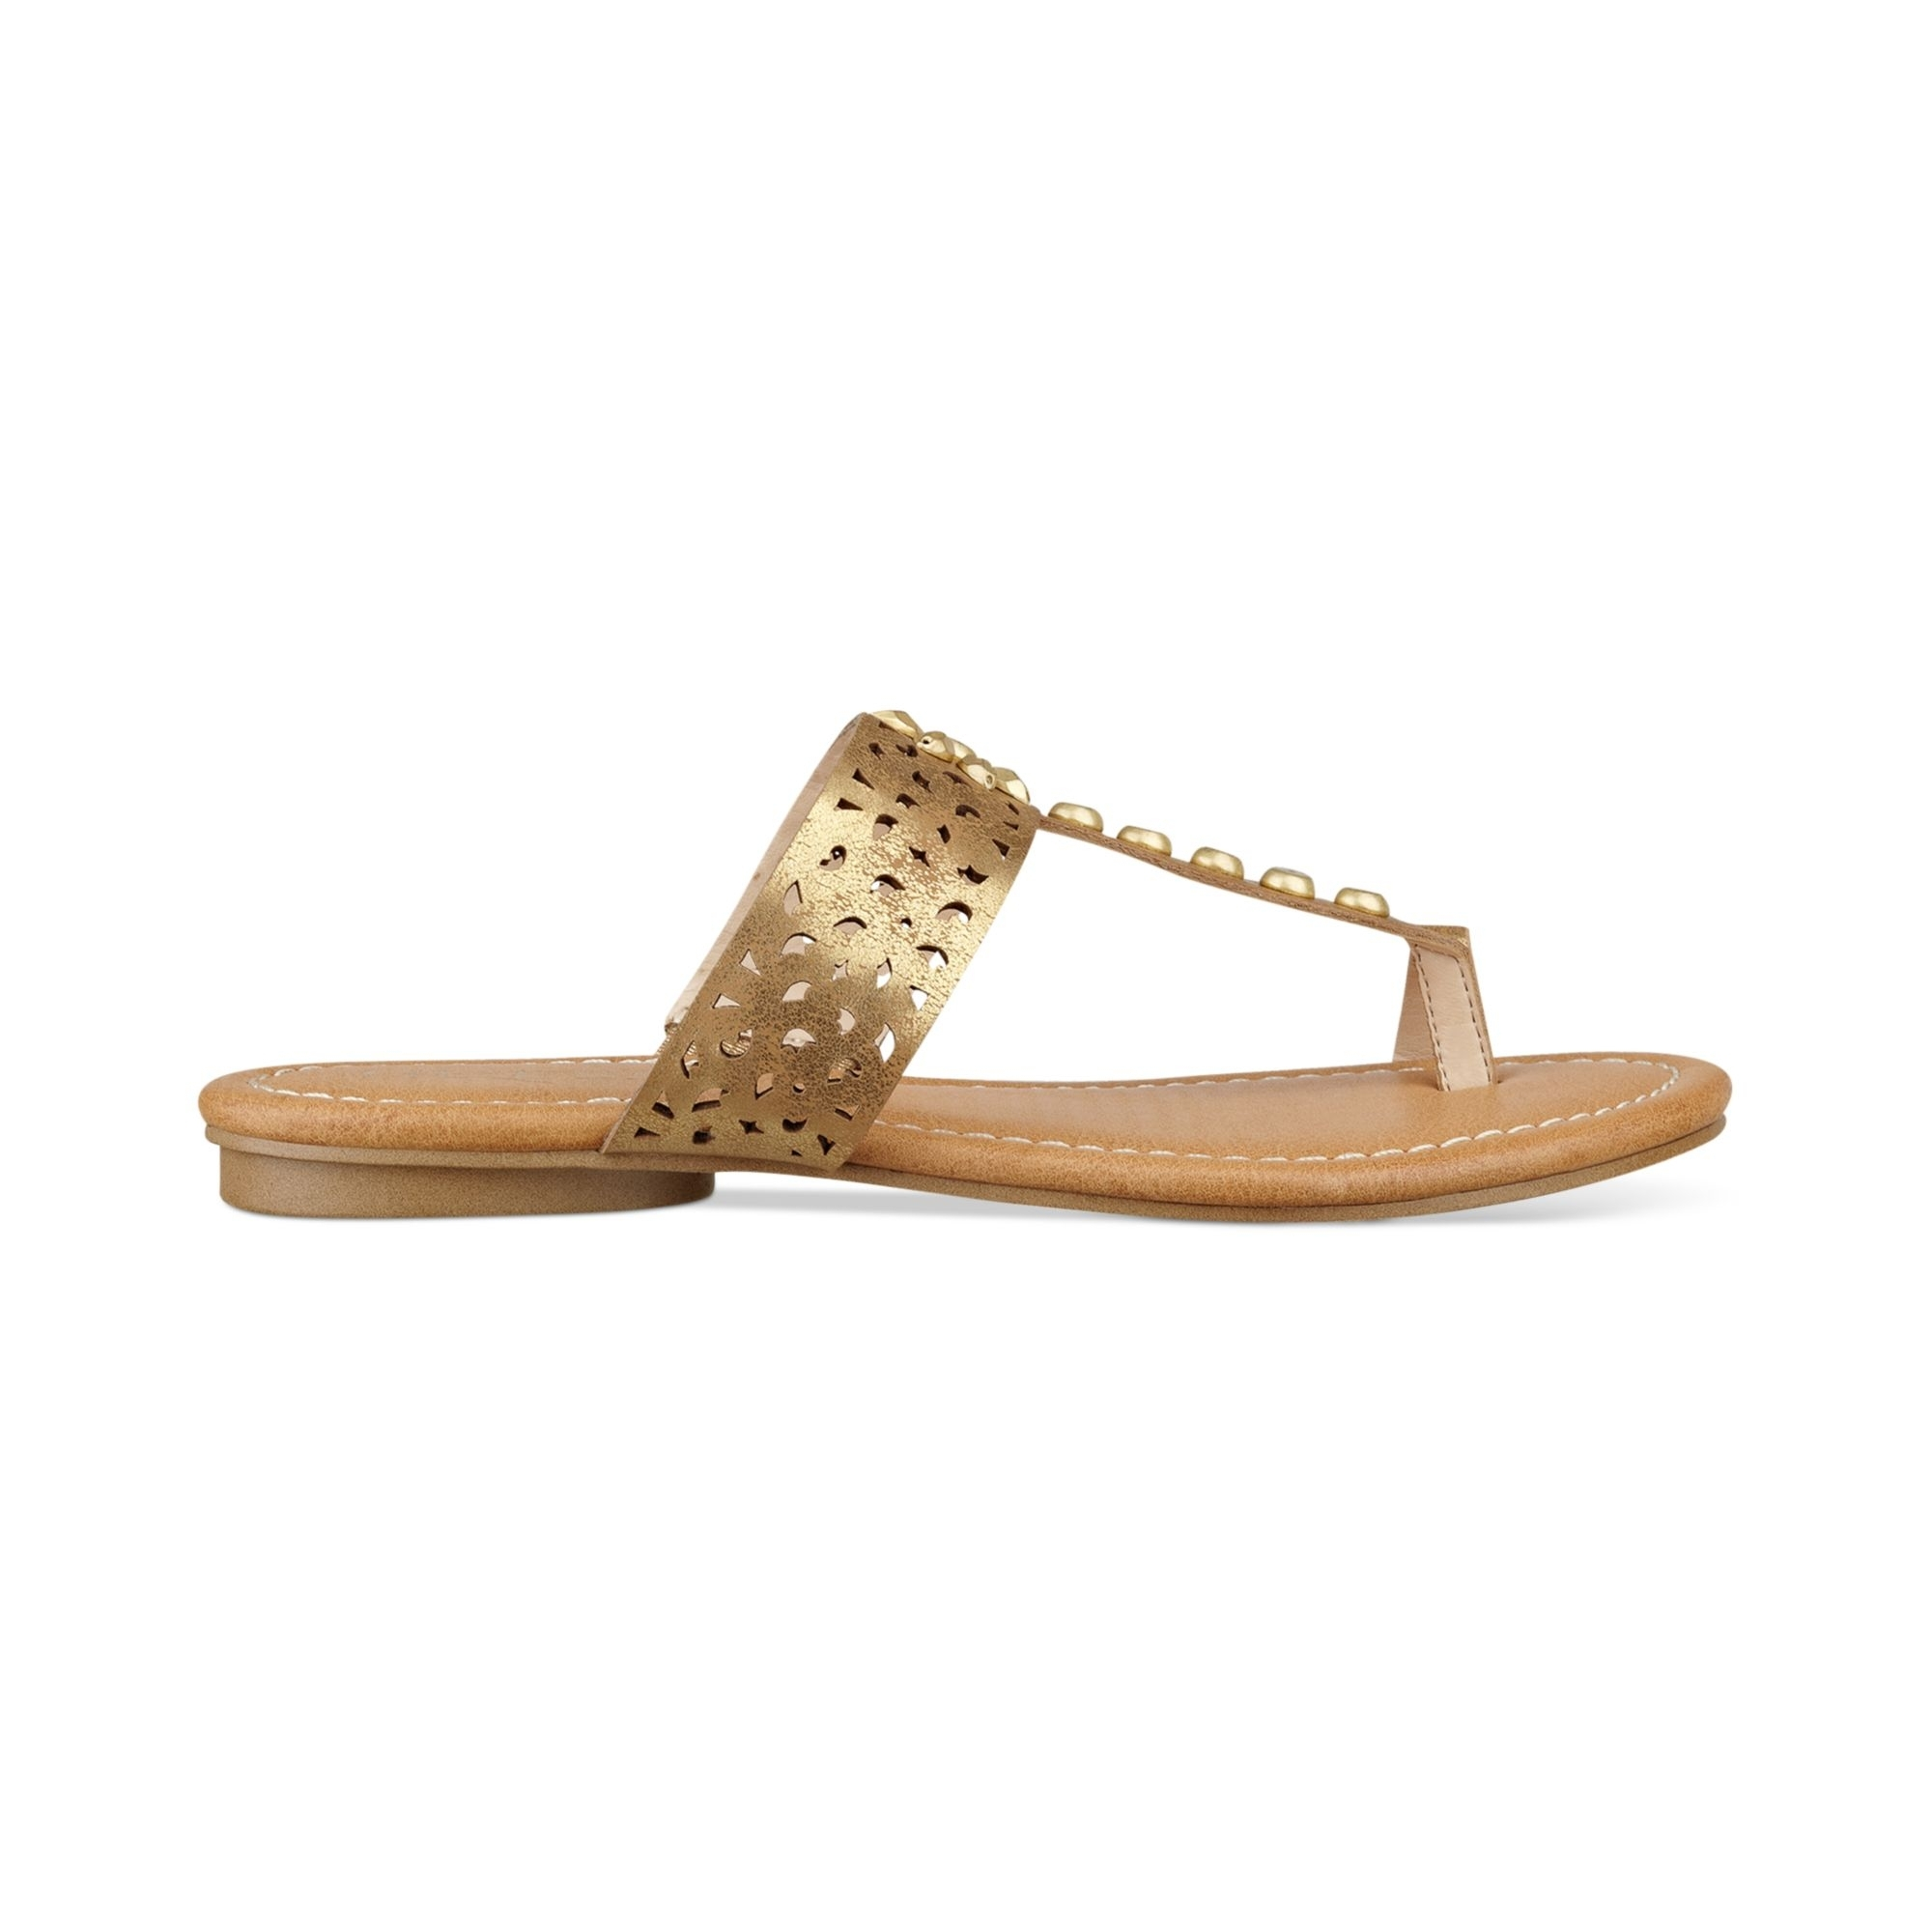 Lyst – Guess Gaiana Toe Ring Flat Sandals In Metallic In 2018 Macy's Toe Rings (View 11 of 15)